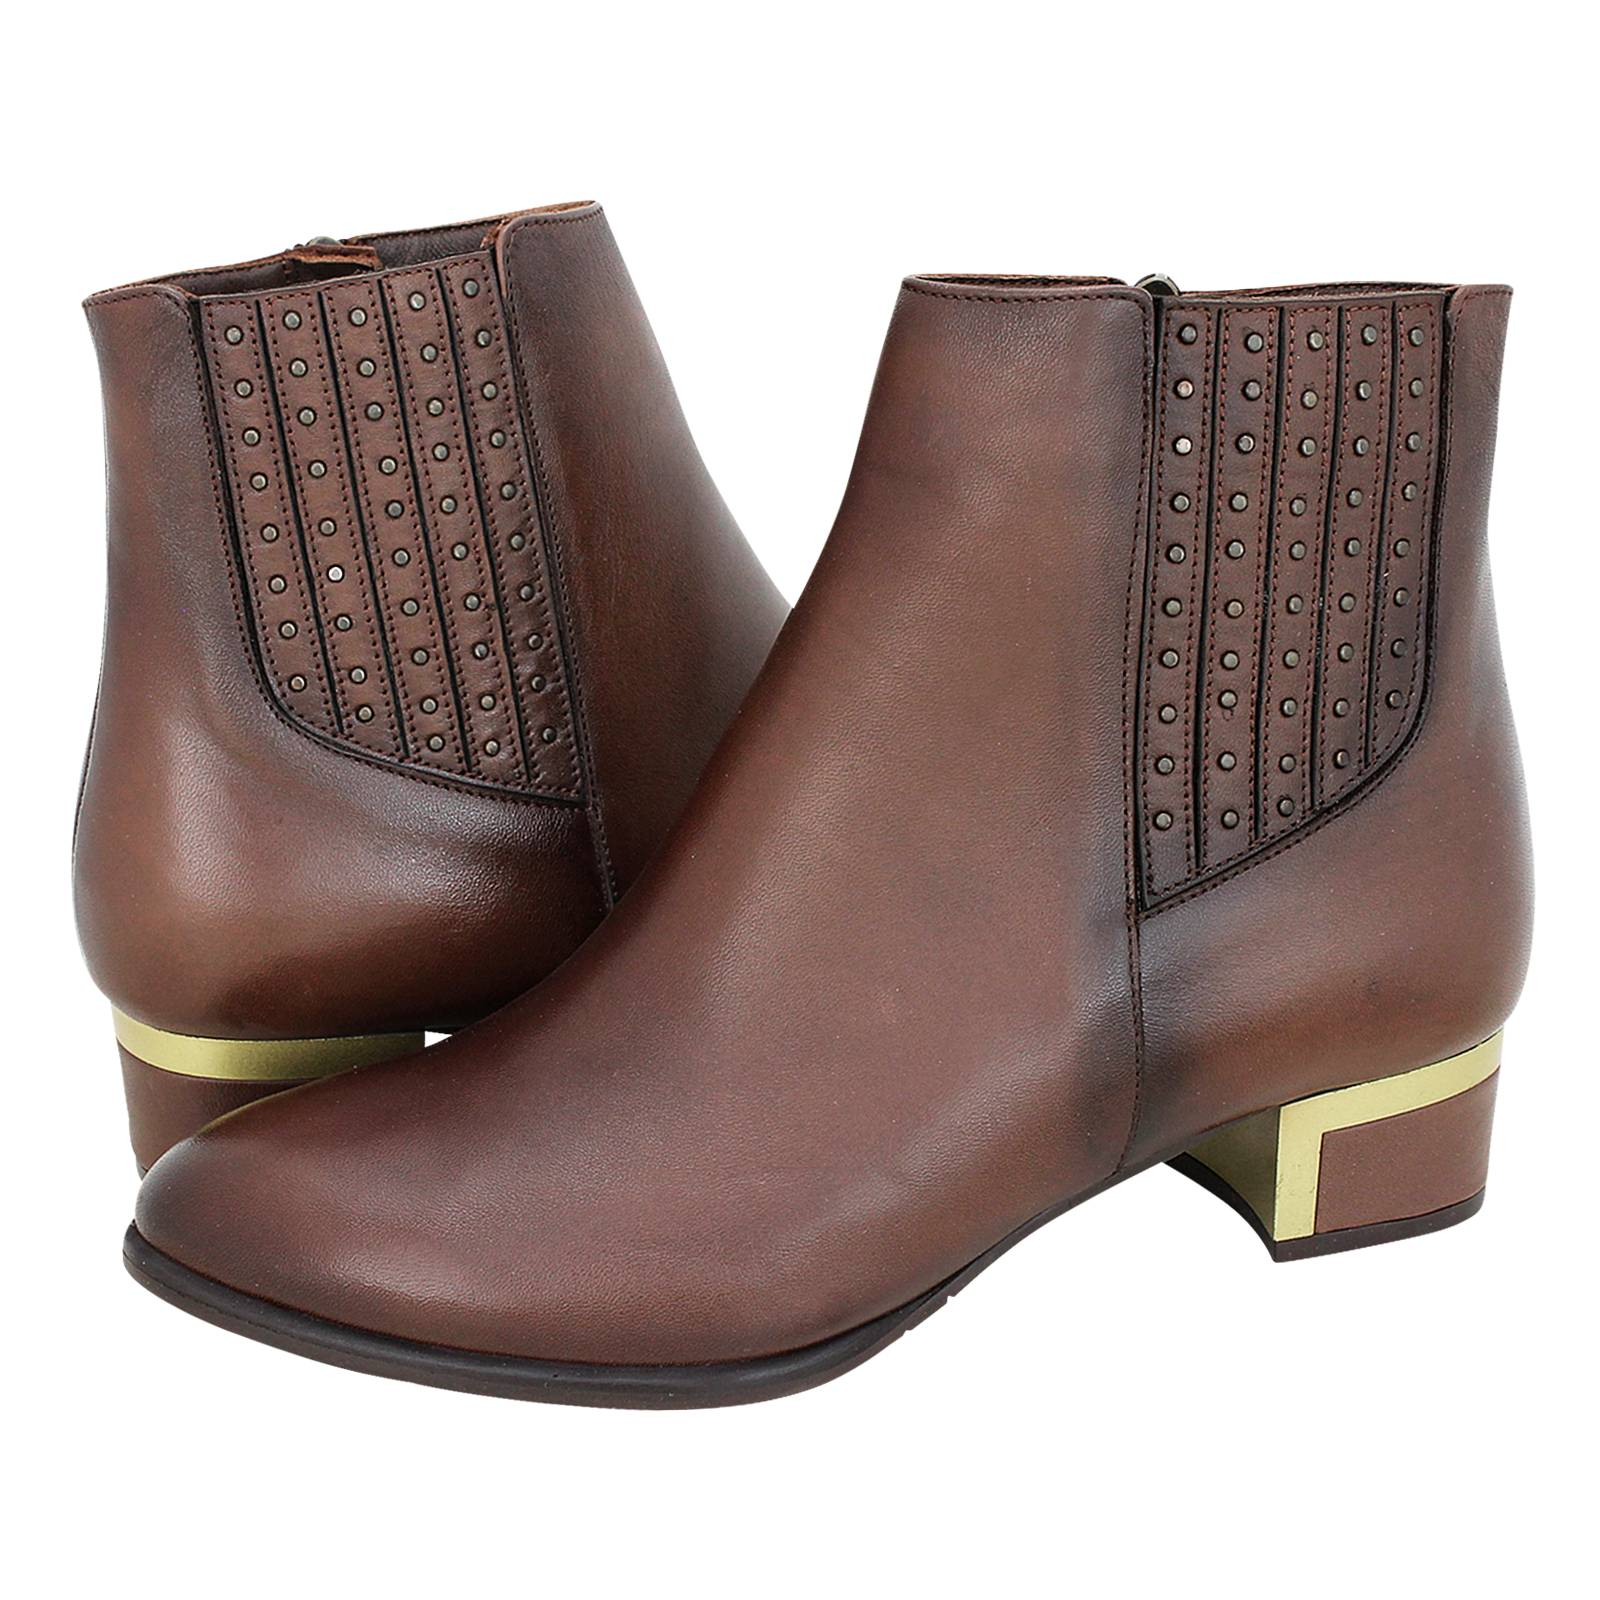 Trebatice - Esthissis Women s low boots made of leather - Gianna ... 73377826059